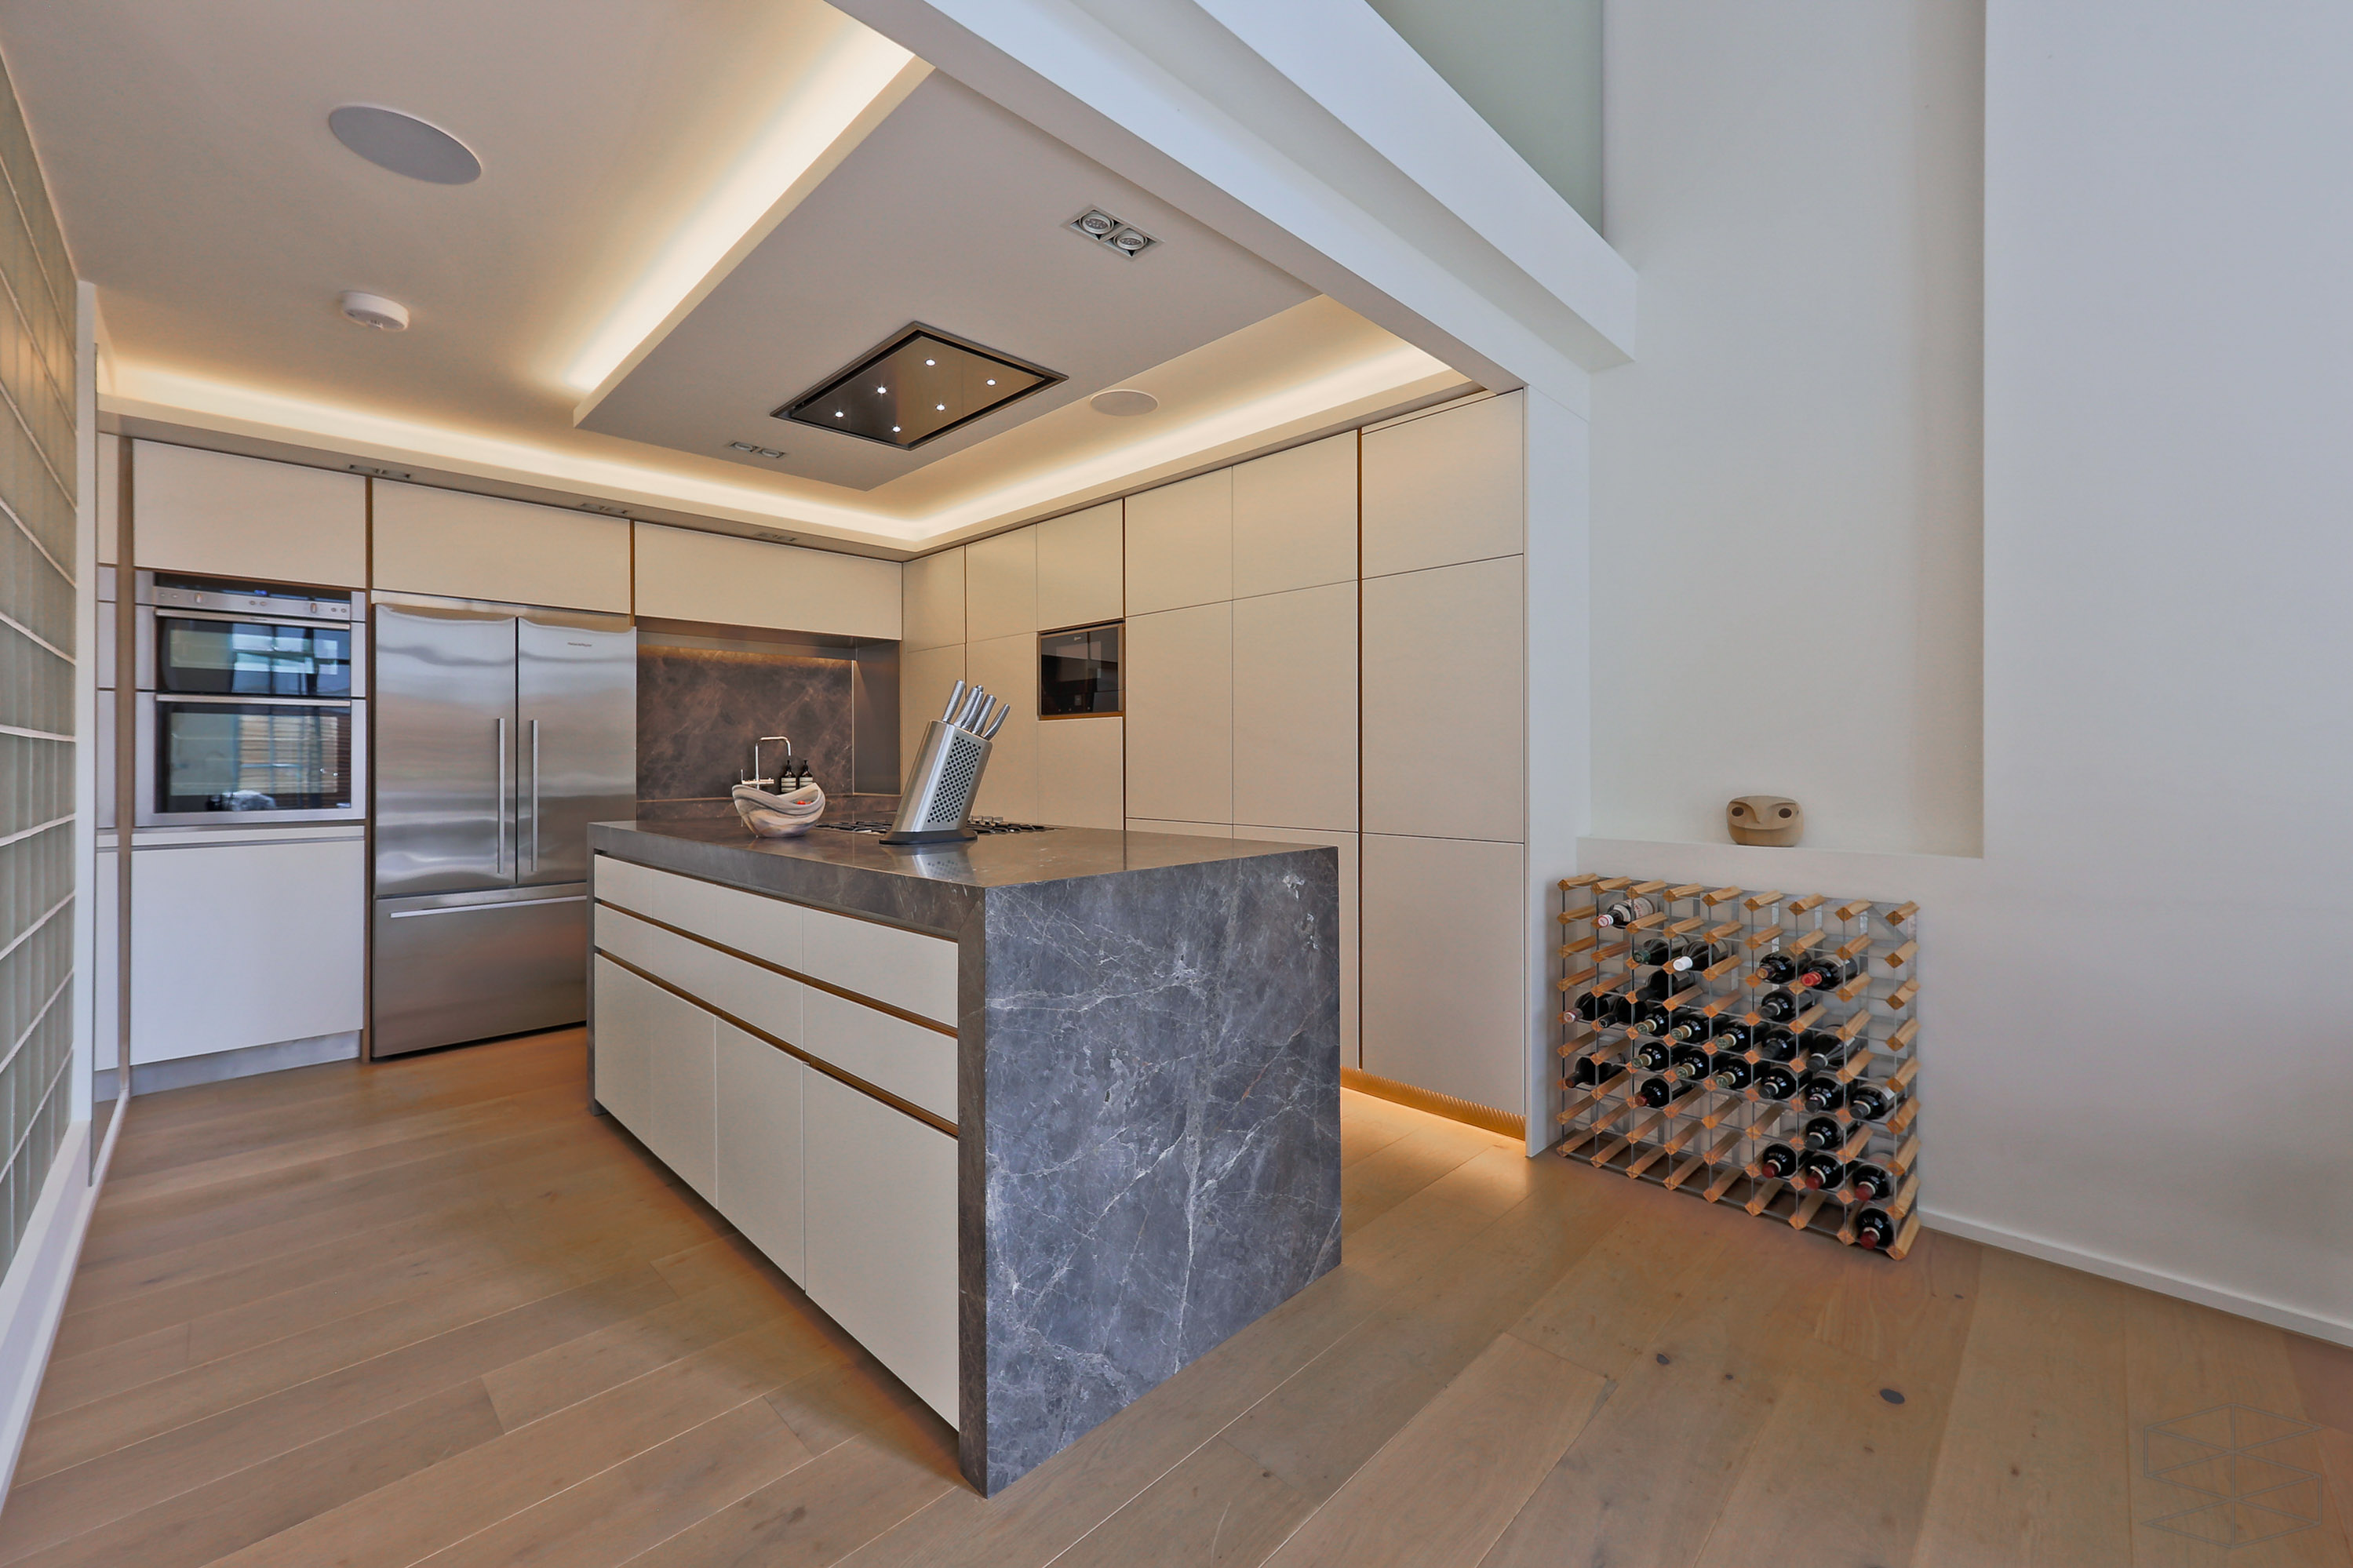 Plan C Bespoke Kitchen Islington